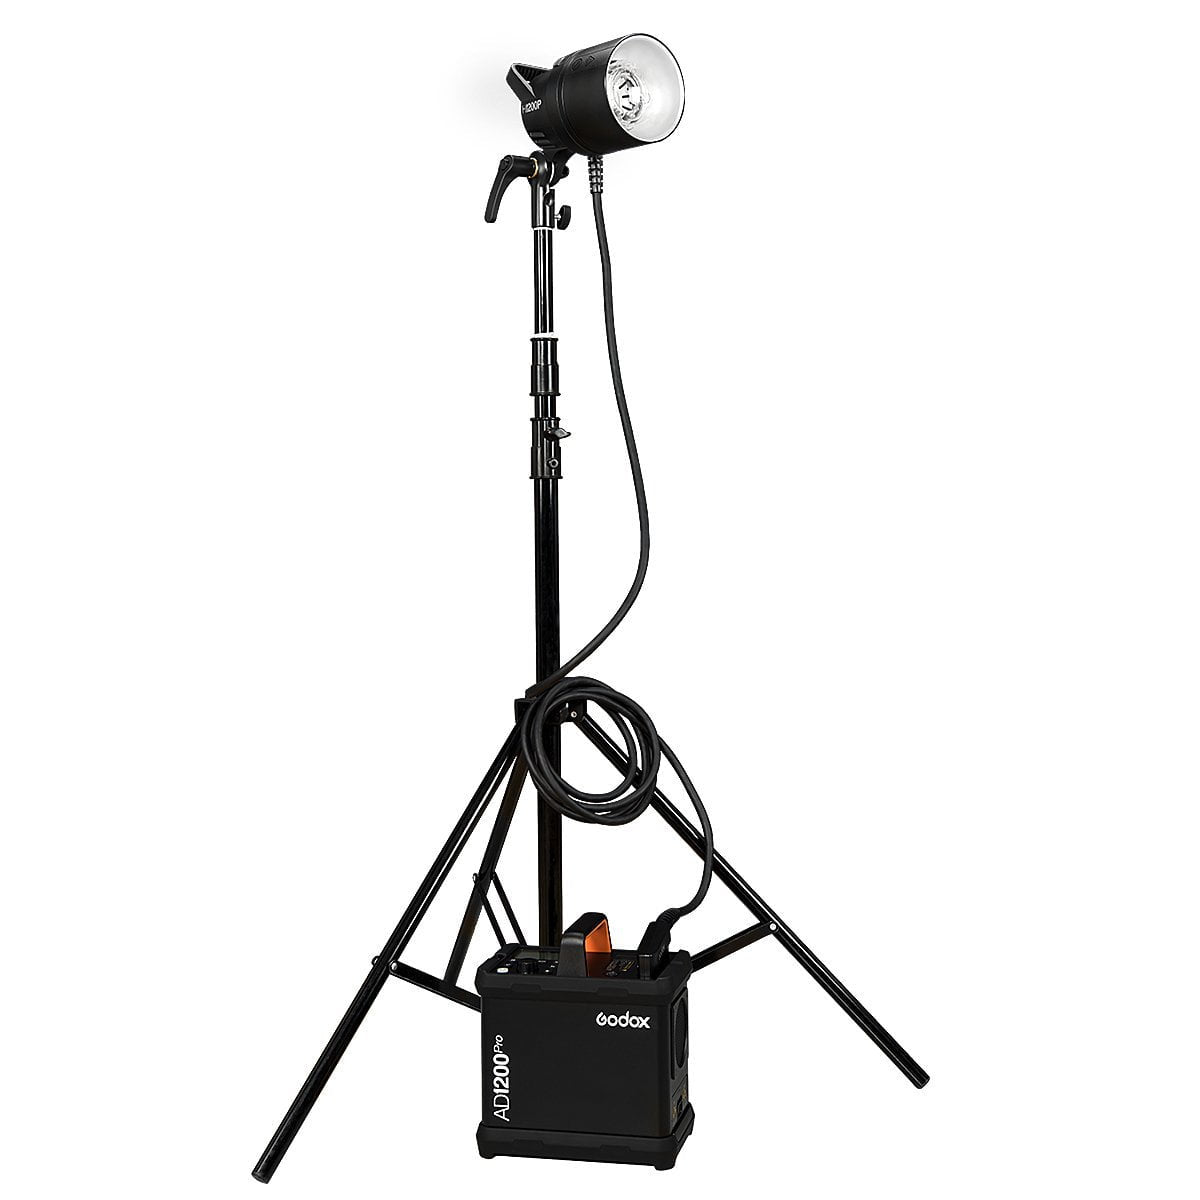 Godox AD1200 Pro TTL HSS Battery Powered Strobe